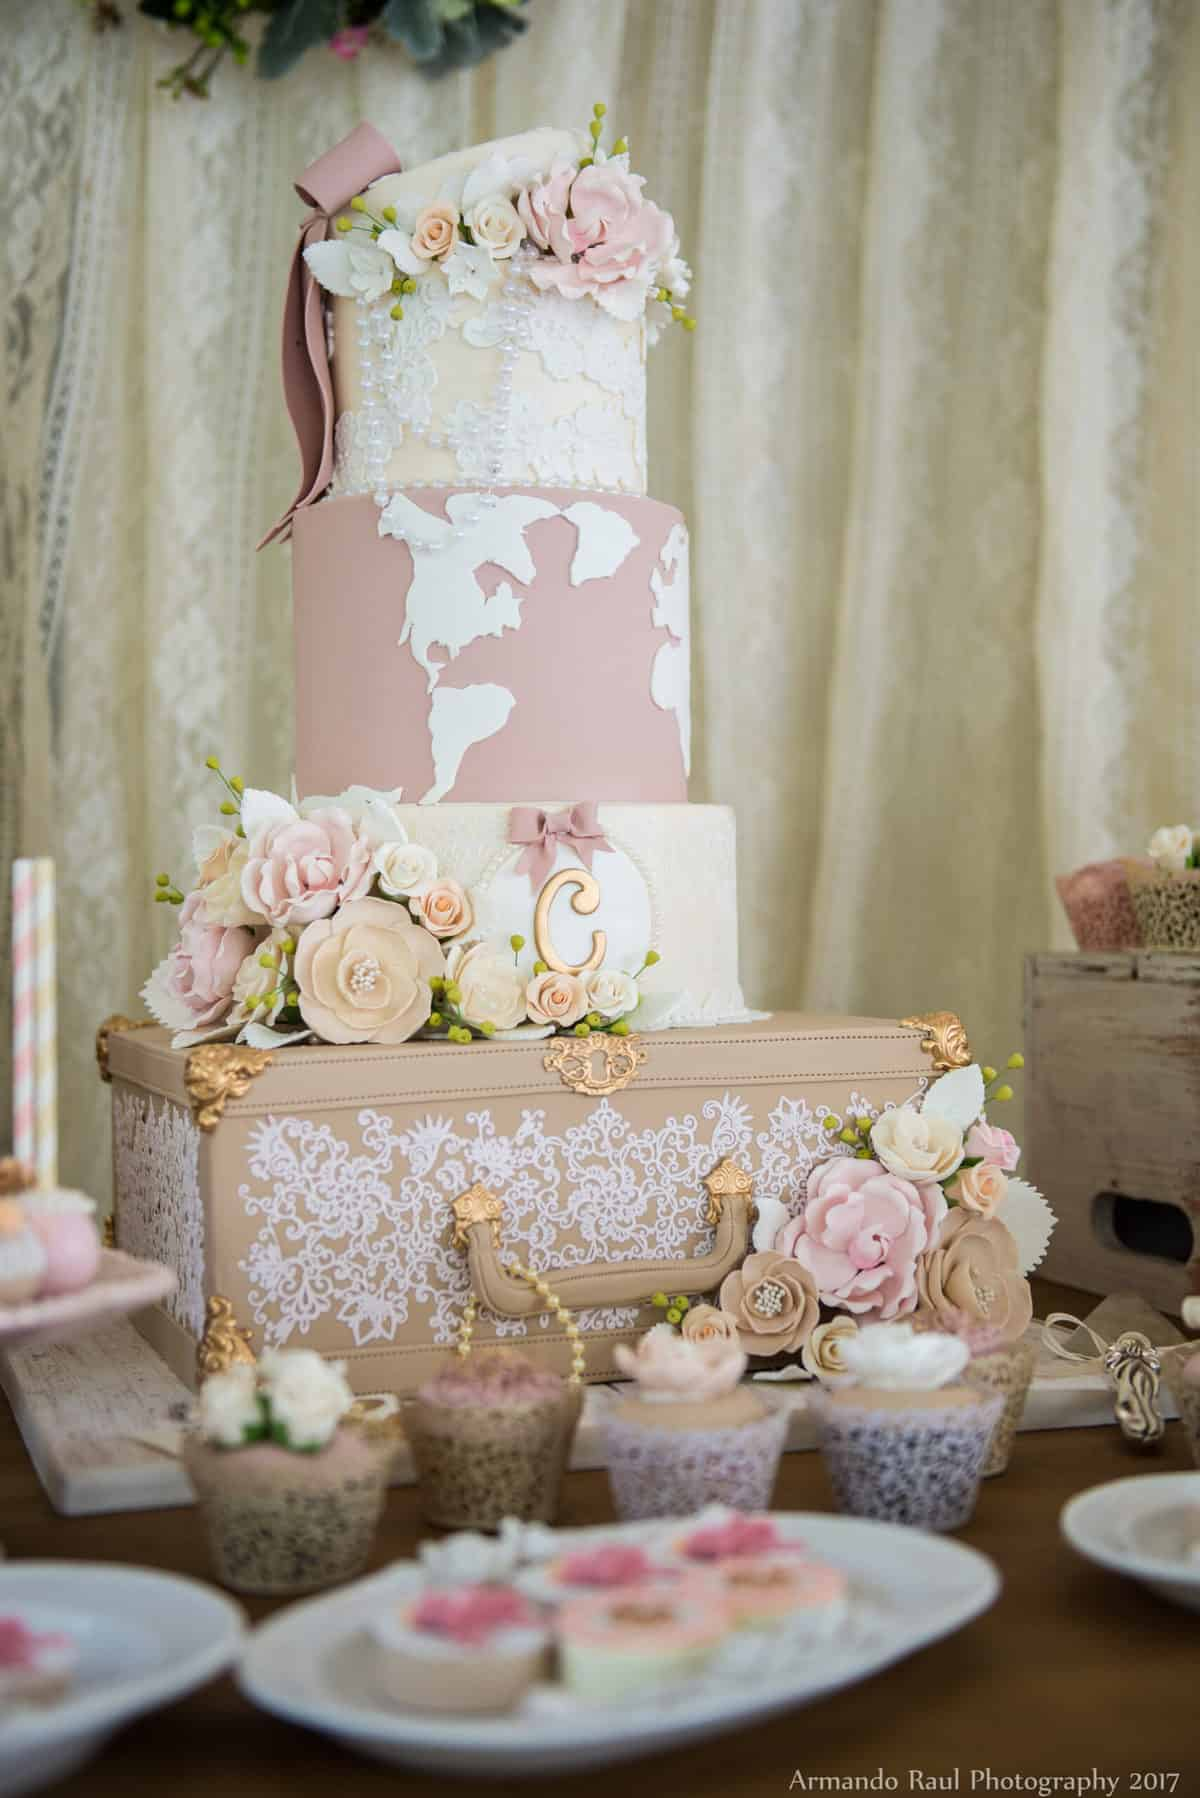 Girl Baby Shower Cake with Vintage Luggage, Lace, Pink, Flowers, Pearls, Bows & a World Map | Vintage Travel Theme Baby Shower | Baby Girl | You Are My Greatest Adventure | Lace, World Map, Flowers, Cameras, Vintage Decor | Cake, Sweets, Desserts, Lounge Seating Area, World Cuisine, Food Stations, Seating Arrangement | Home Baby Shower | Blush Pink, Beige, Gold, Champagne, White